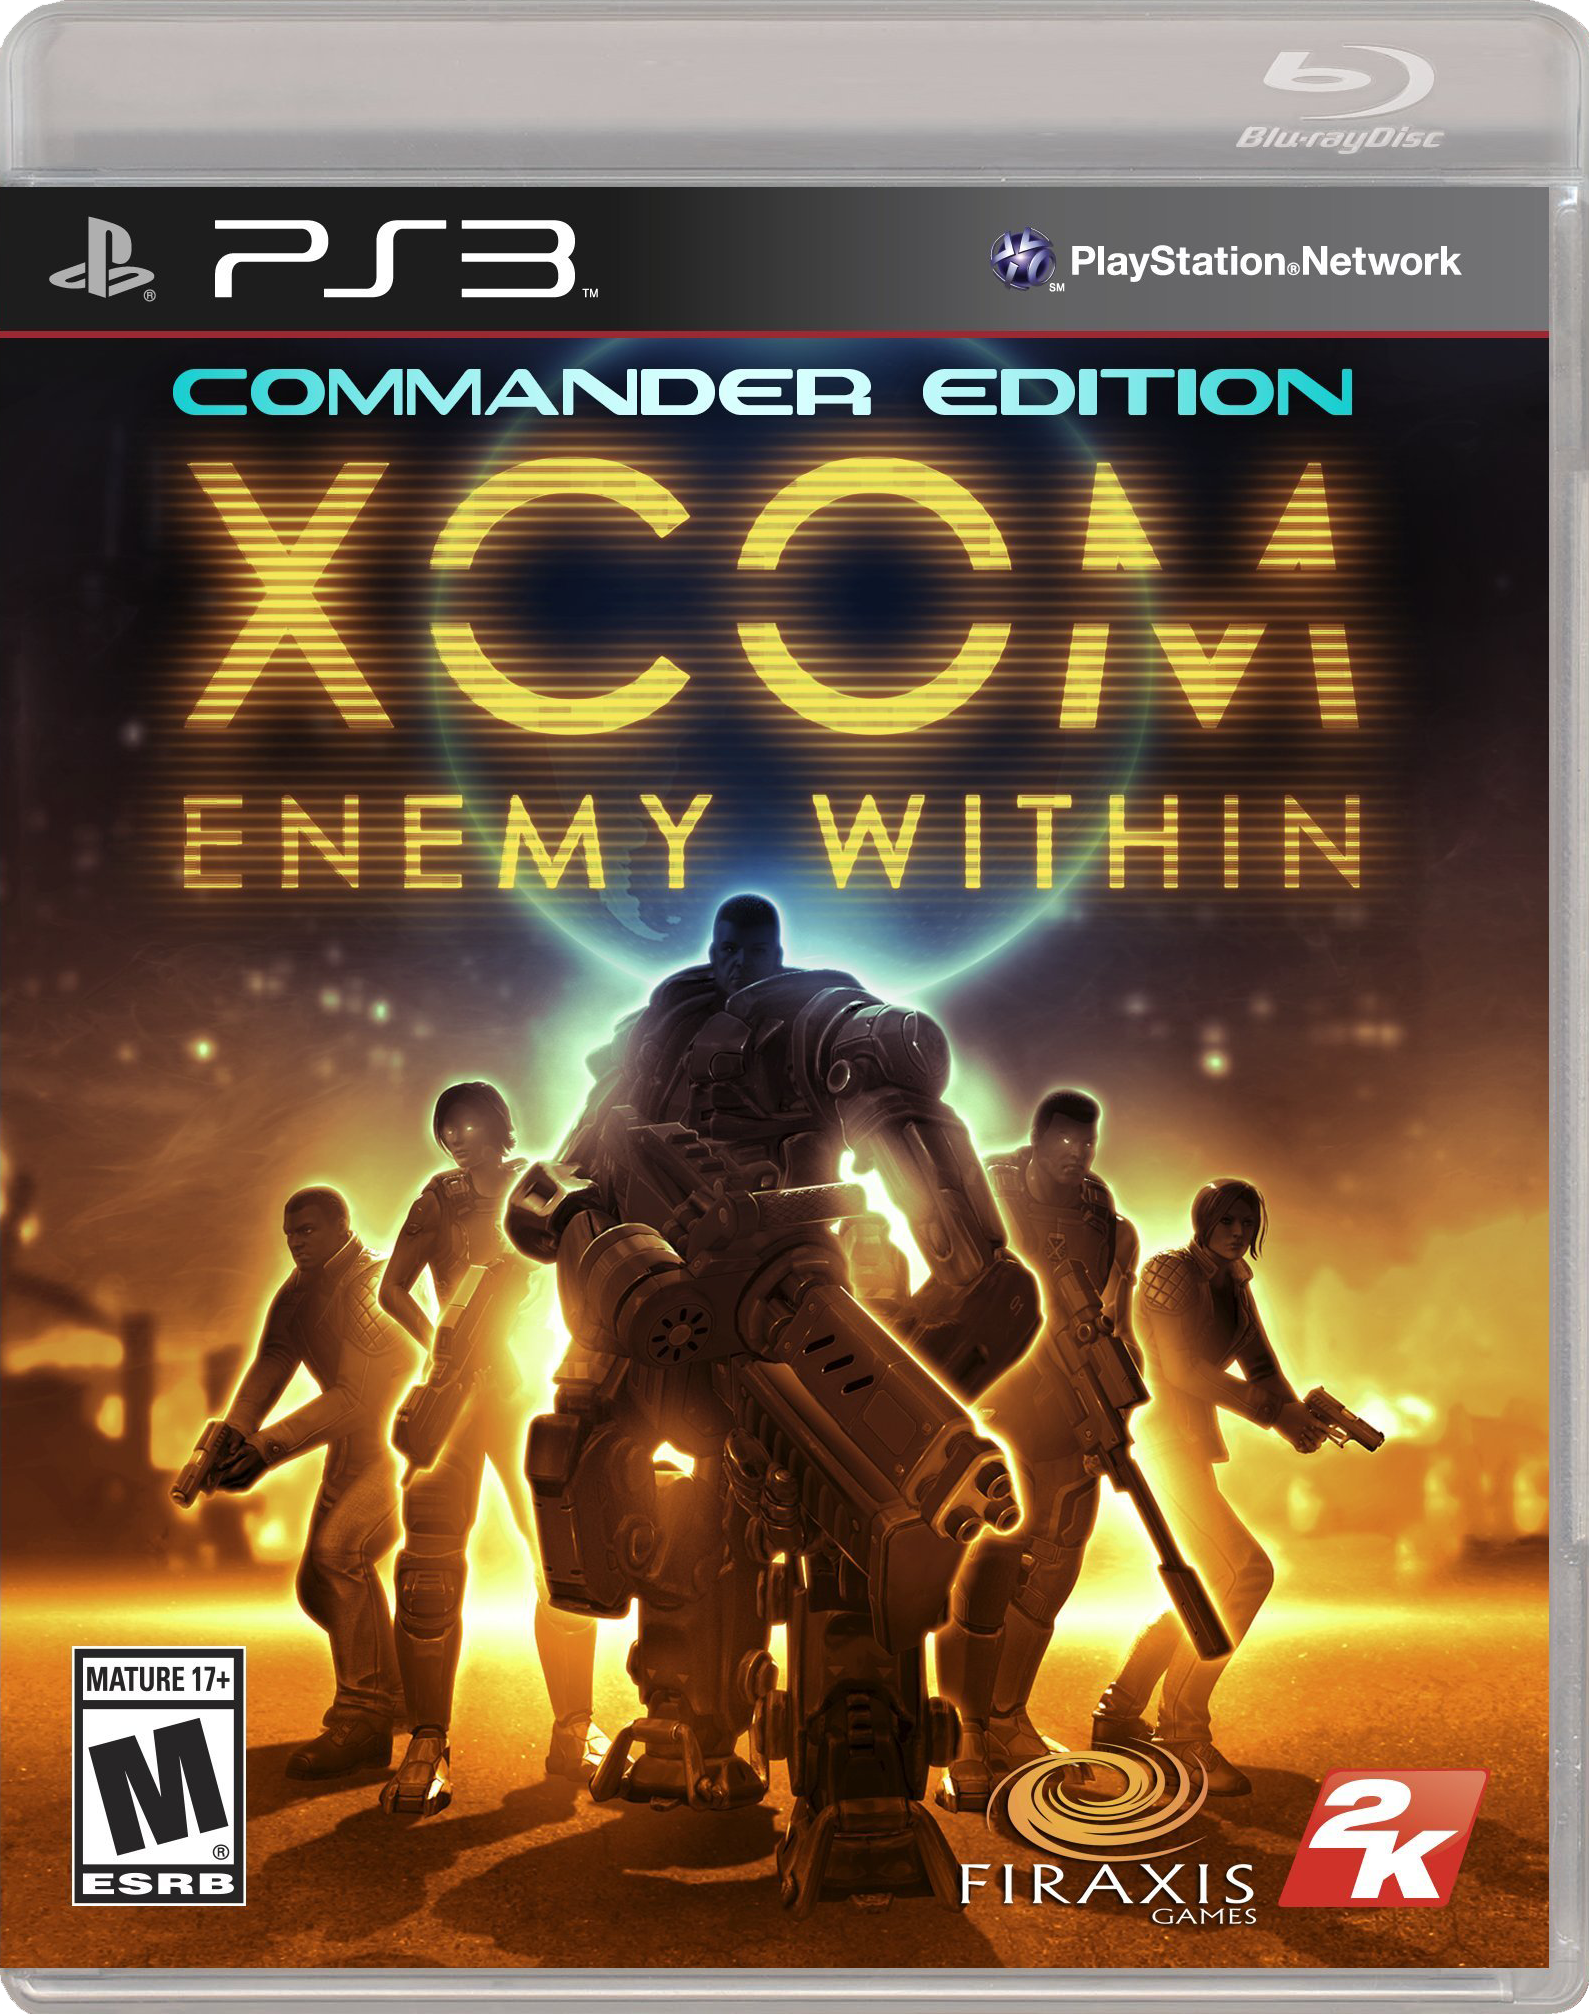 Obaly XCOM: Enemy Within a DriveClub 86784